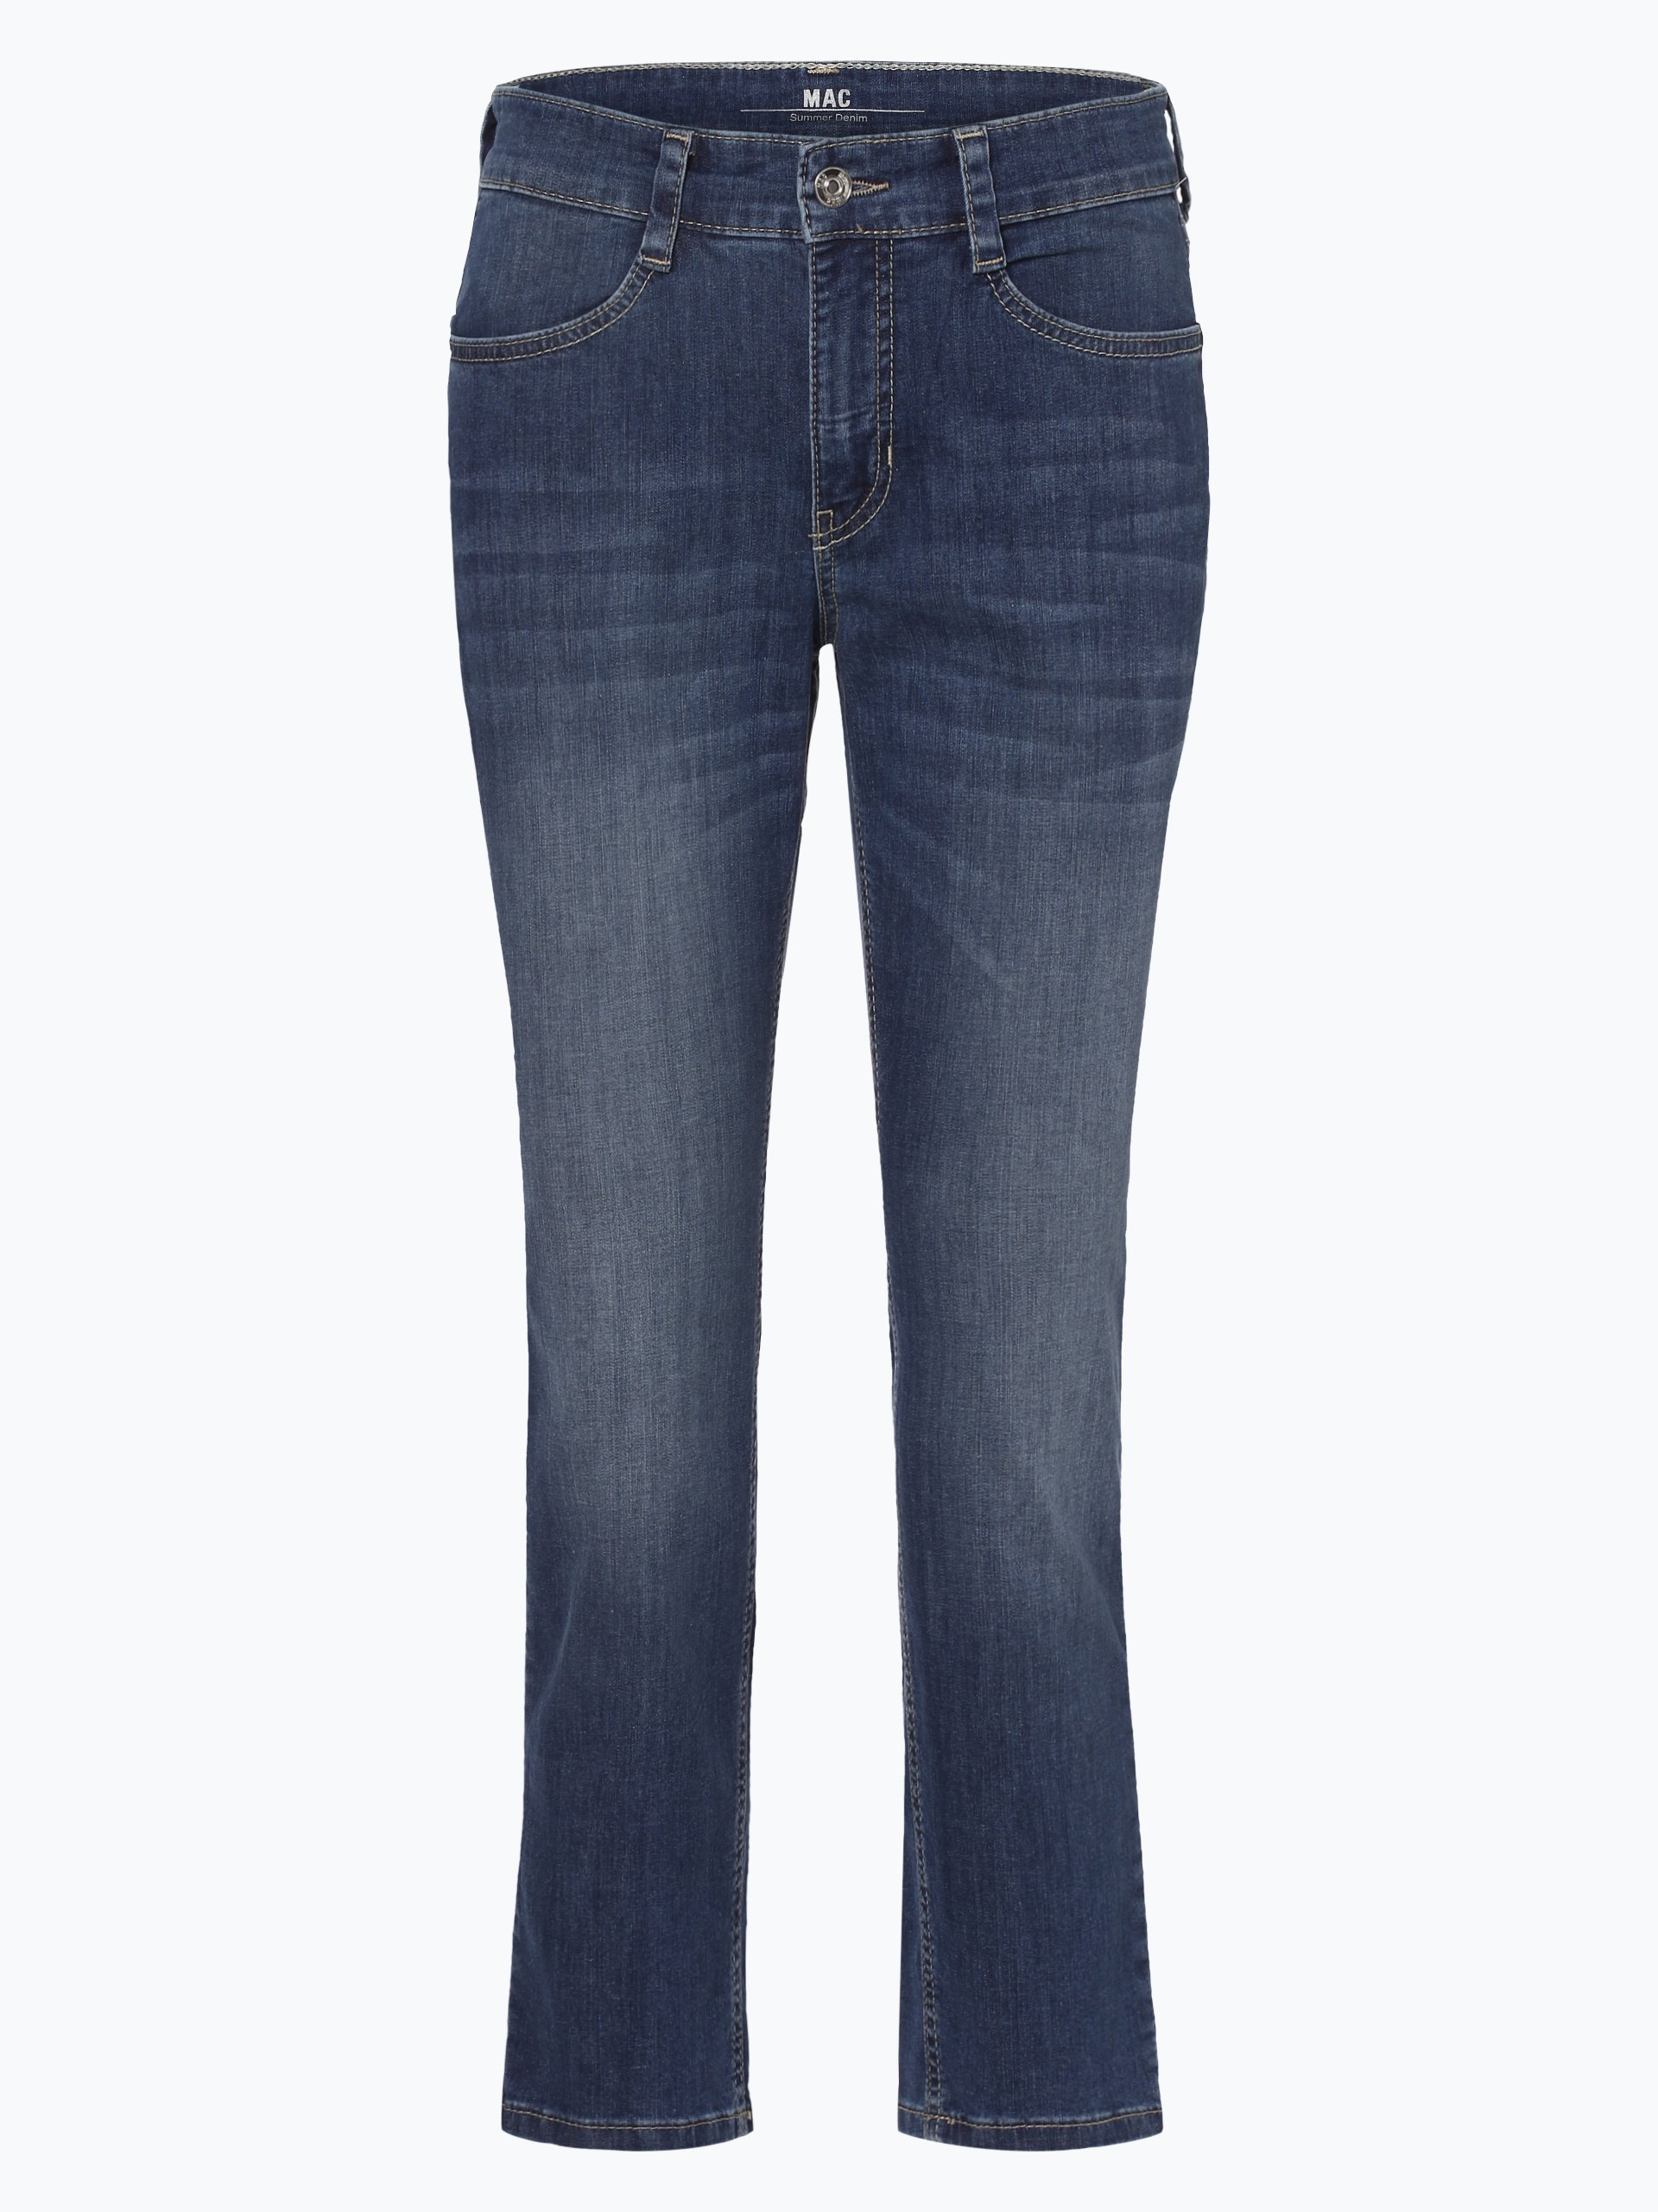 MAC Damen Jeans - Angela 7/8